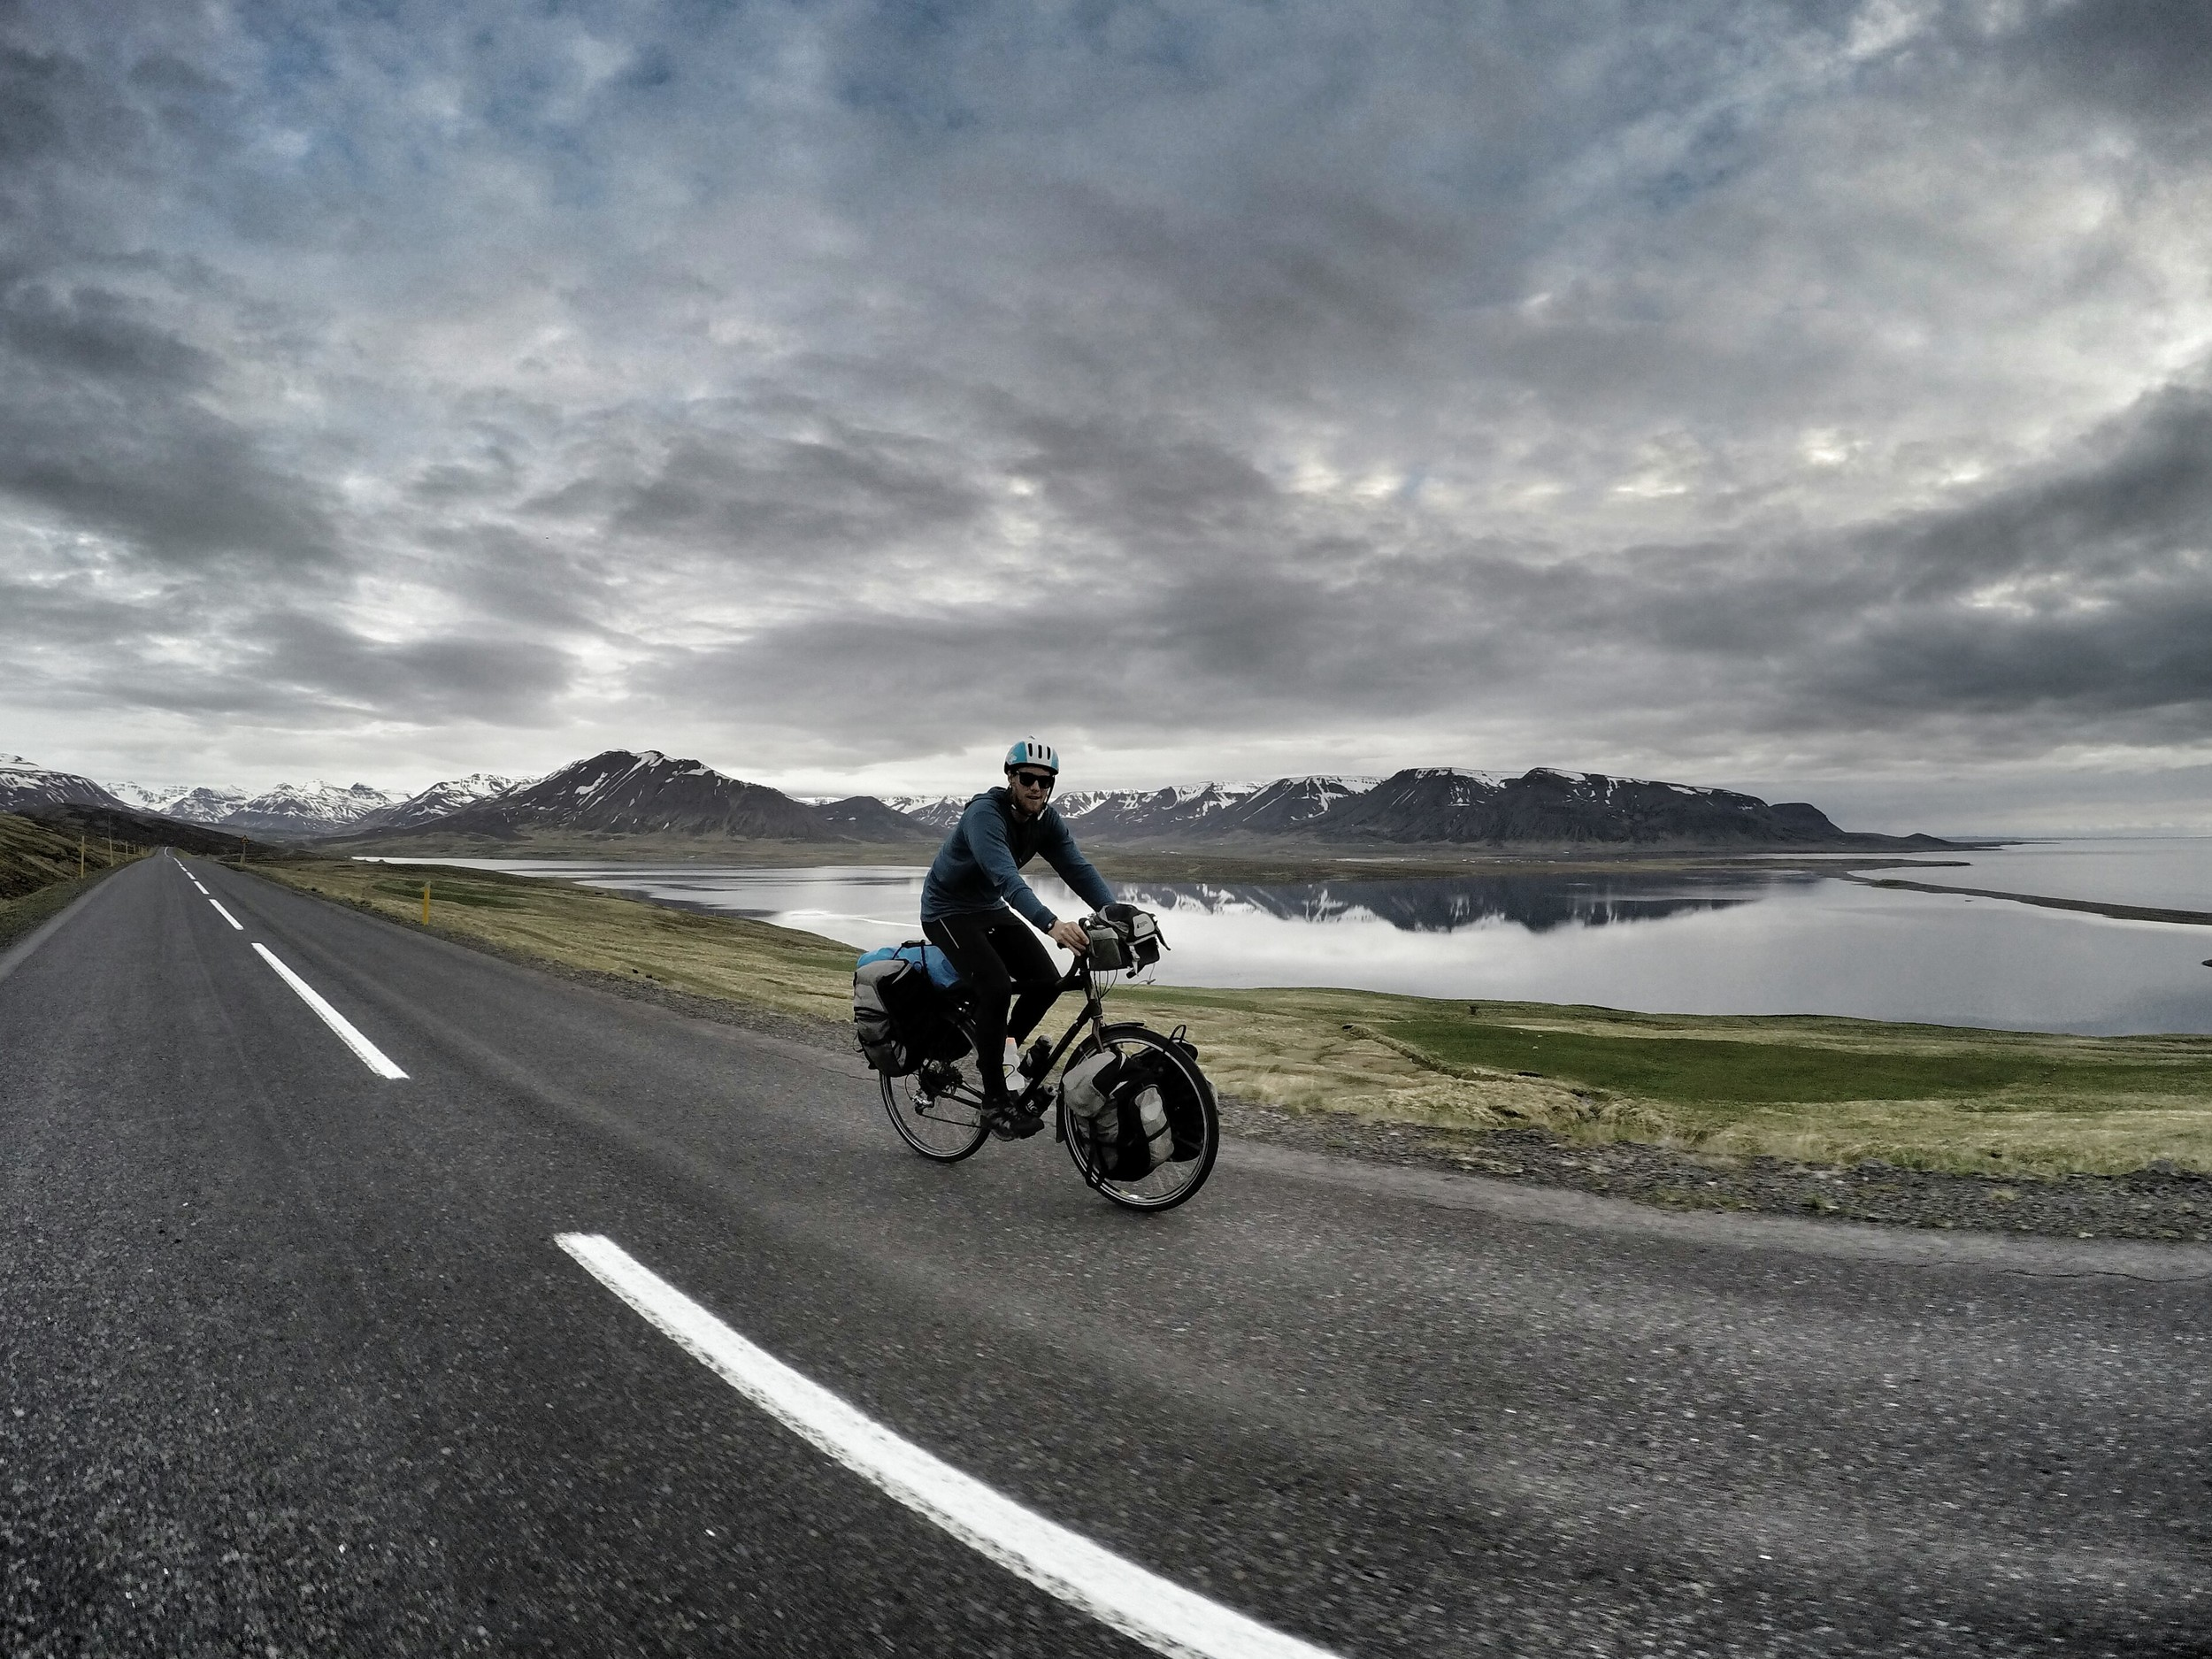 I think the fondest memory of our cycling circumnavigation of Iceland was simply the routine of getting up from the tent and cycling all day for 16 days. The freedom of direction and intimacy of our slow speed gave us such a feeling of independence that it made me smile even during the toughest of winds or steepest of climbs.